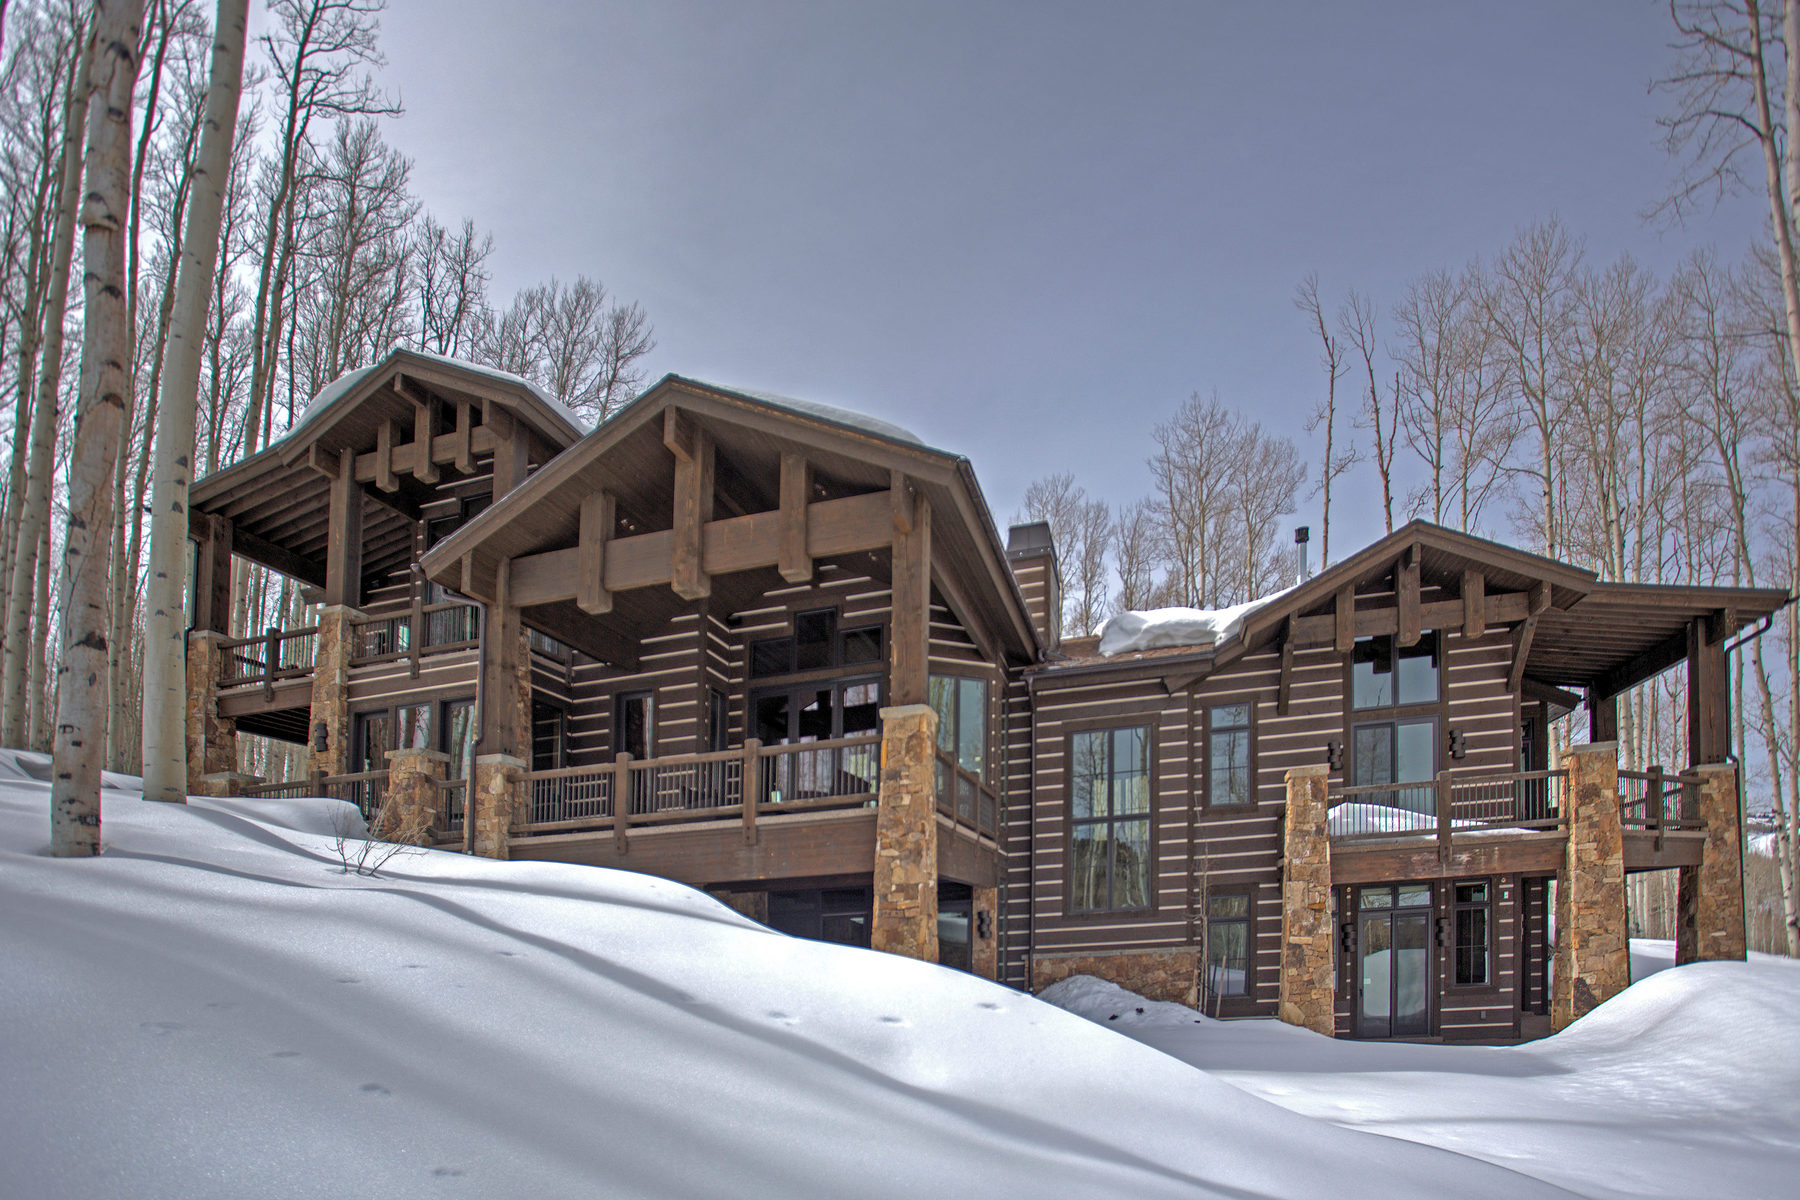 一戸建て のために 売買 アット Incredible Ski-In Ski-Out Colony Home with Mature Trees and Views 177 White Pine Canyon Rd Lot 177 Park City, ユタ 84098 アメリカ合衆国